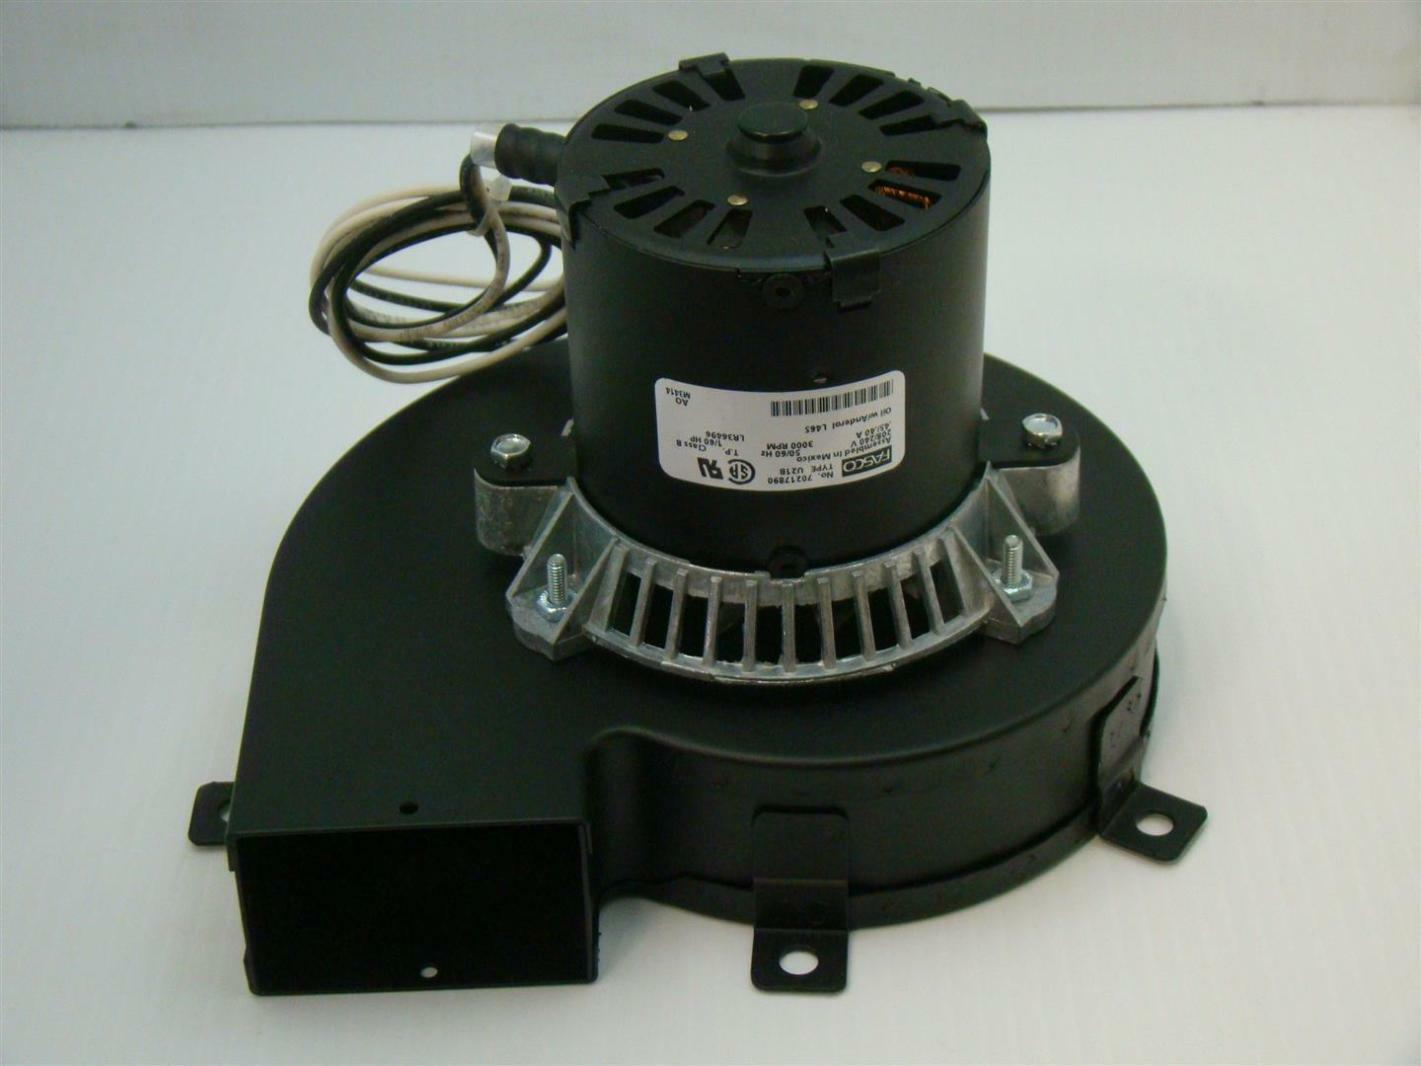 Fasco Motor Blower 208 240v 45 40a 3000rpm 1 60hp U21b 70217890 Agx114 on metal tool chest